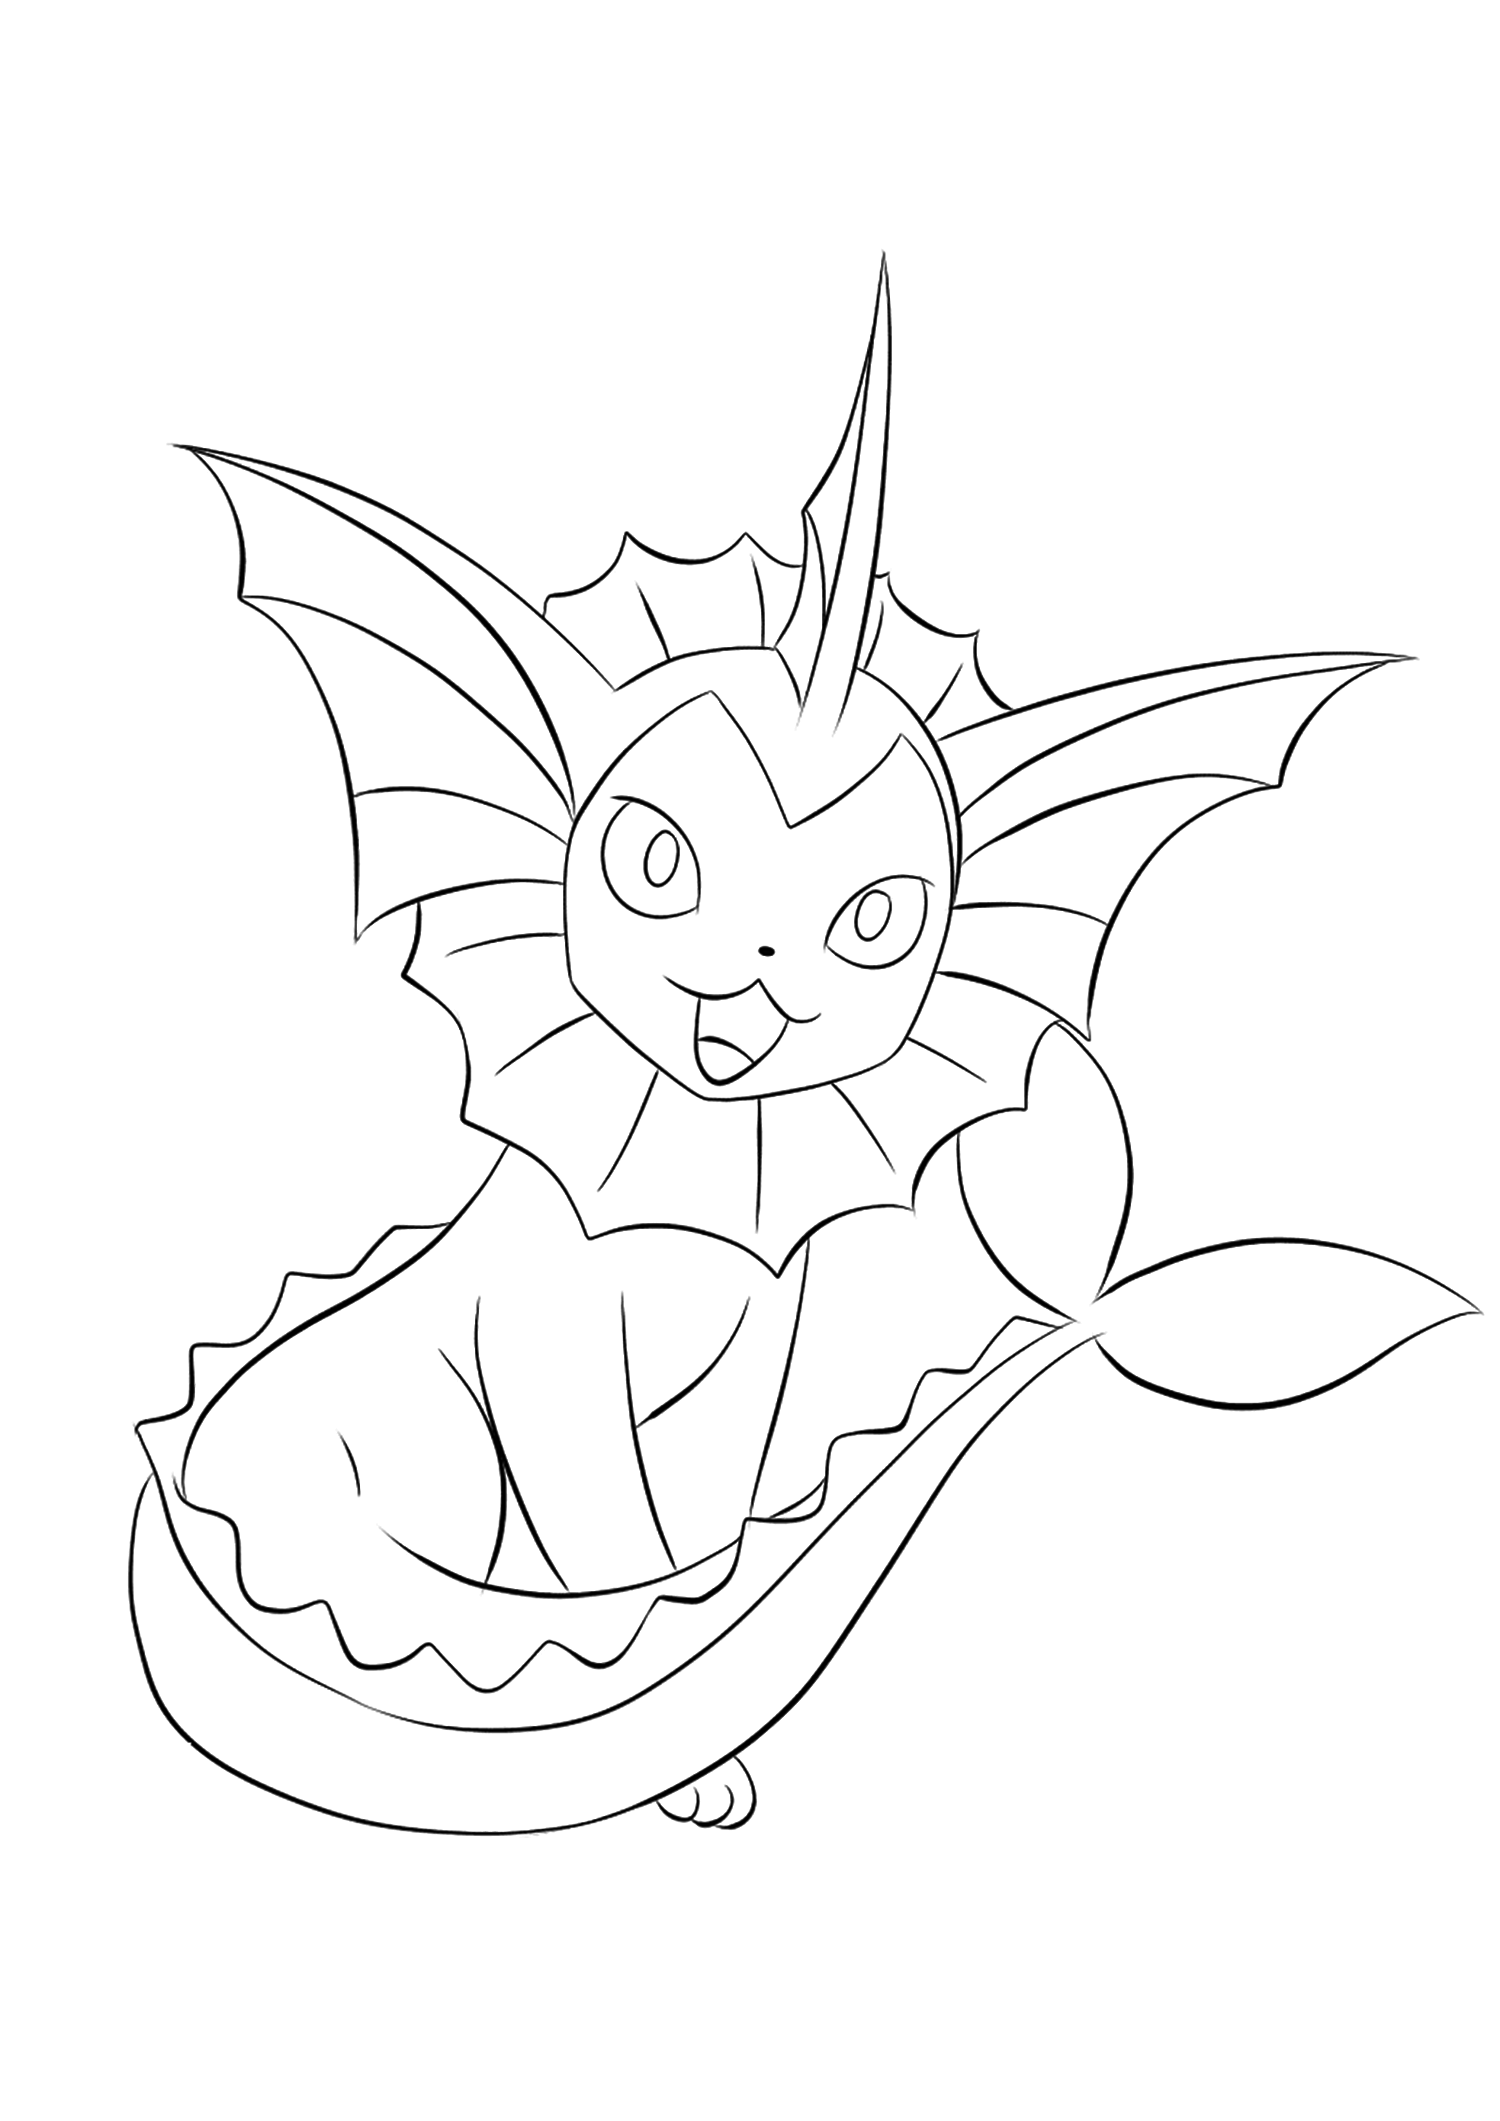 vaporeon pokemon coloring pages vaporeon coloring page by bellatrixie white on deviantart pages pokemon coloring vaporeon